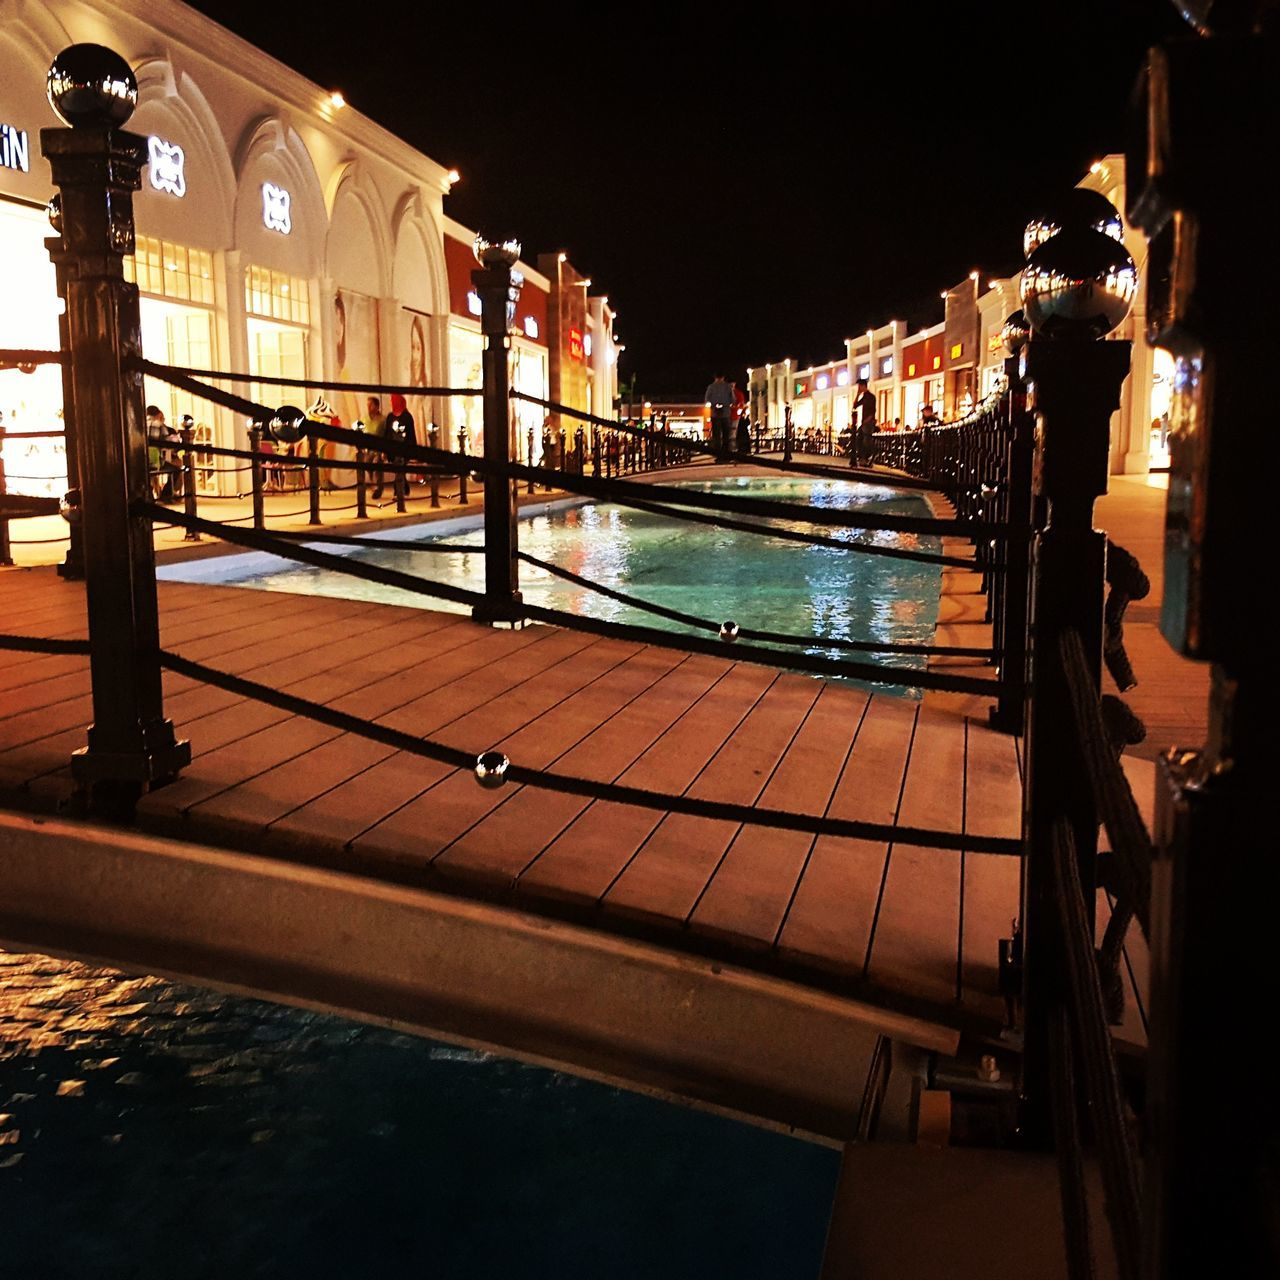 architecture, built structure, building exterior, night, illuminated, water, railing, no people, outdoors, sky, clear sky, city